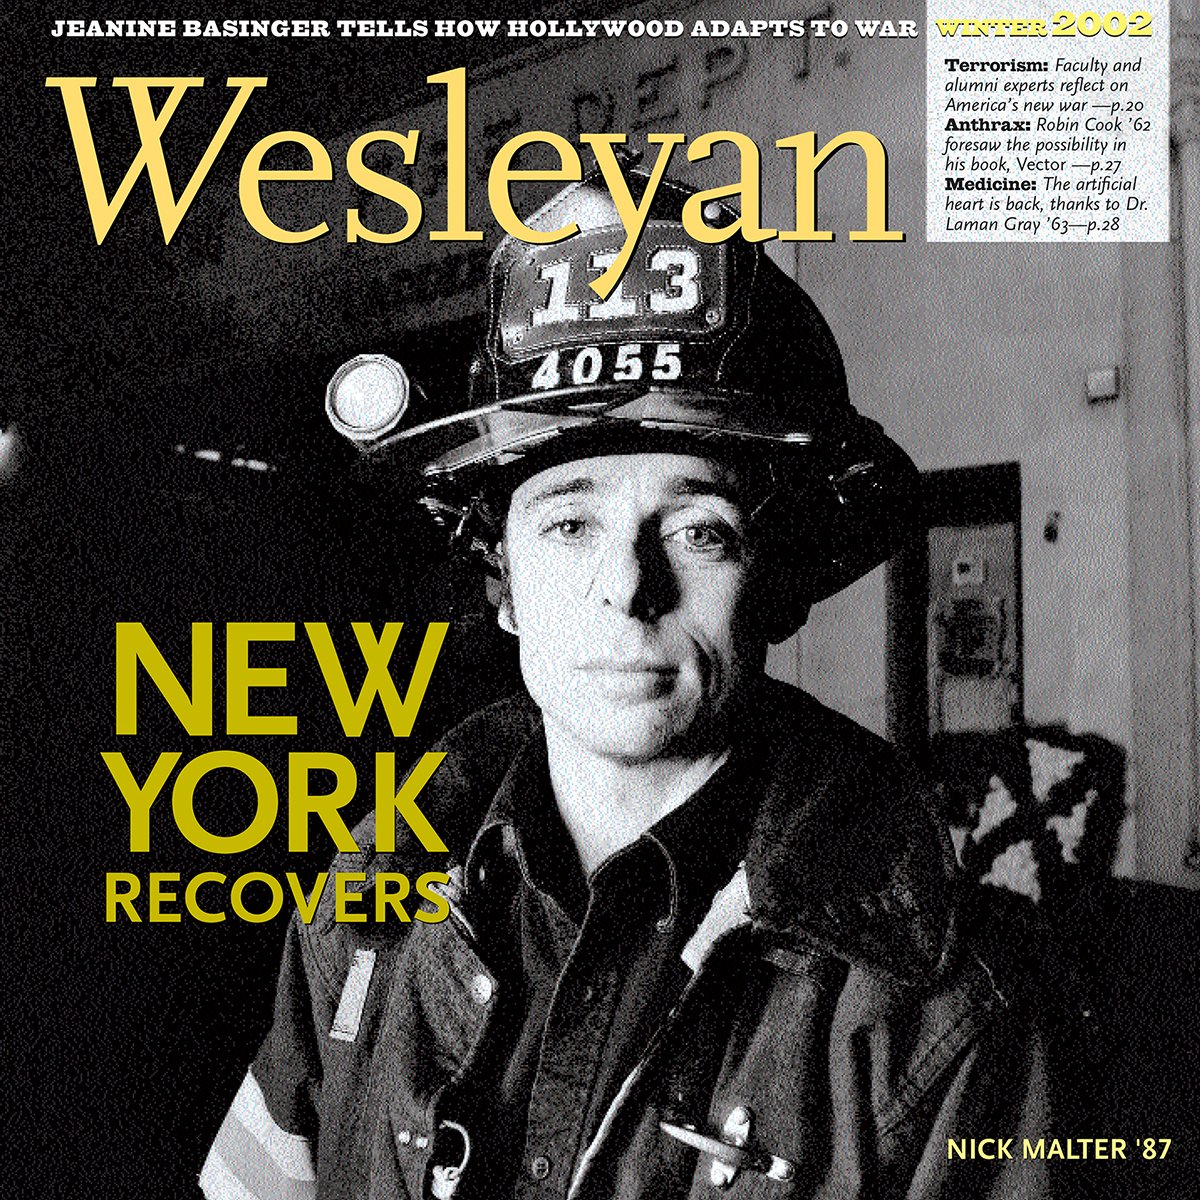 test Twitter Media - Today we reflect on the many members of our community who were impacted by 9/11. We honor their memory with a look back at Wesleyan magazine's coverage of the recovery efforts and words of resilience from alumni and friends who were there: https://t.co/6eqnTxvNB4 https://t.co/OVBAM5TK2k